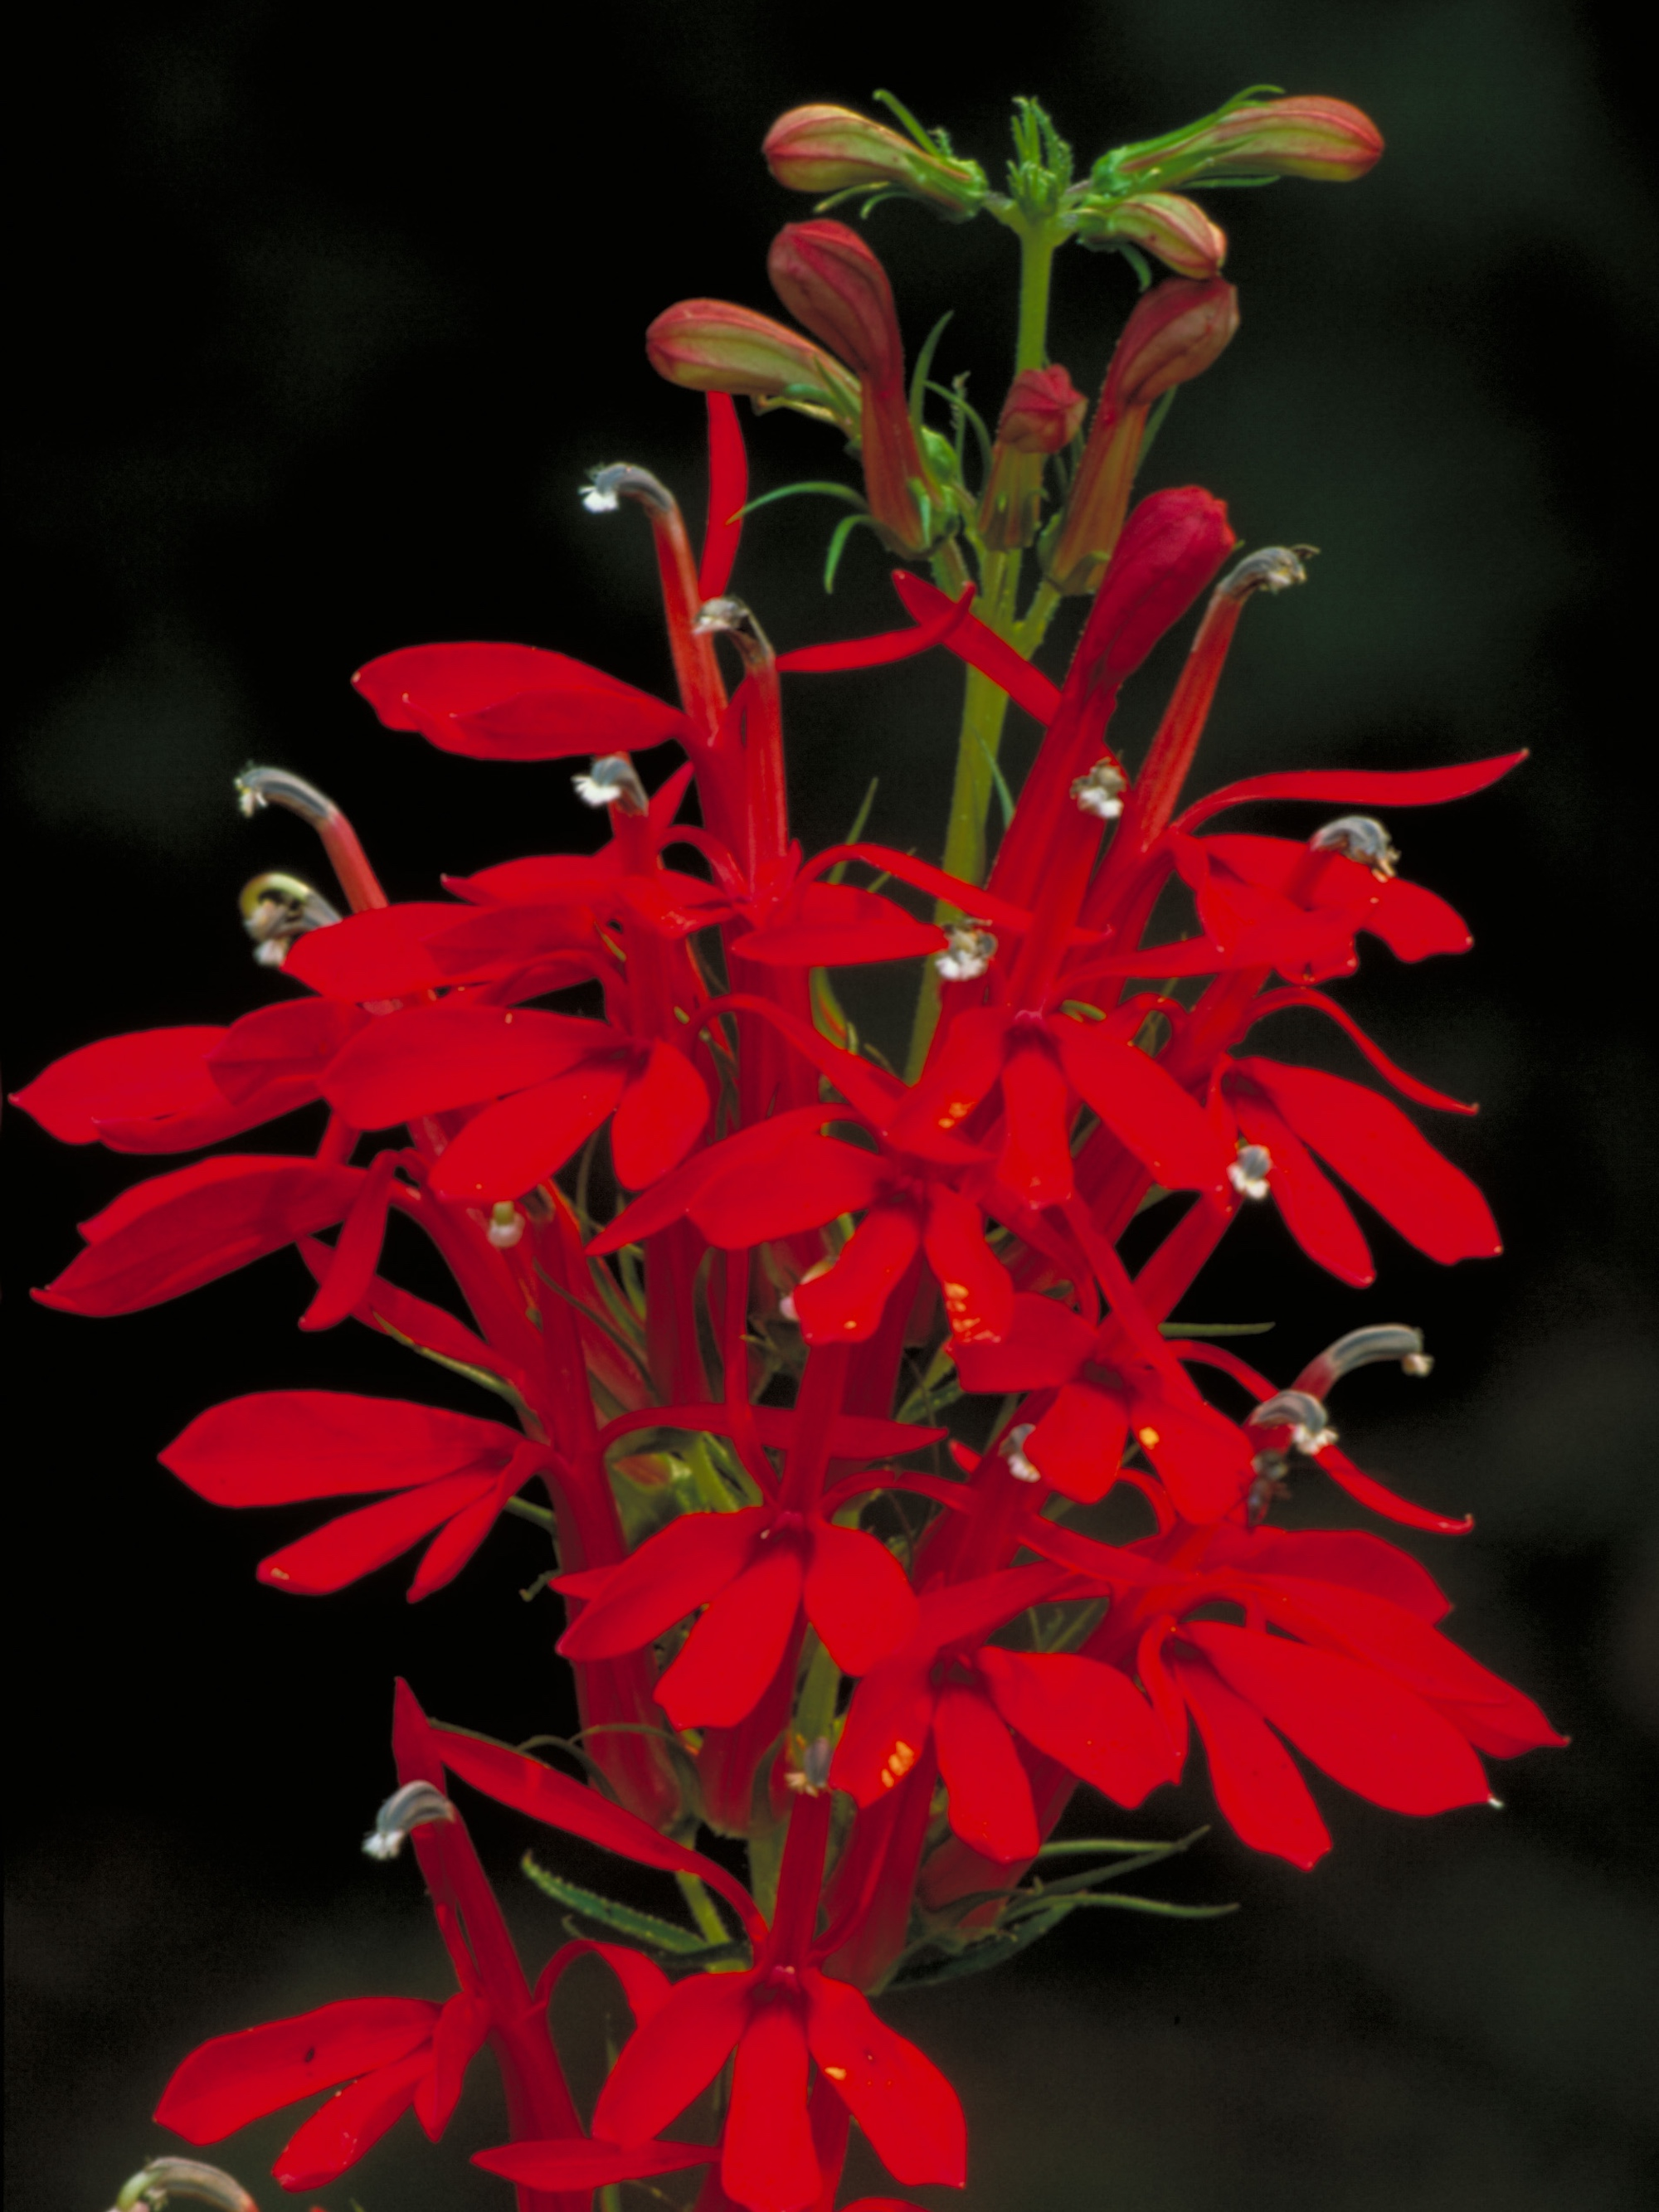 Cardinal flower from U.S. Fish and Wildlife Service.